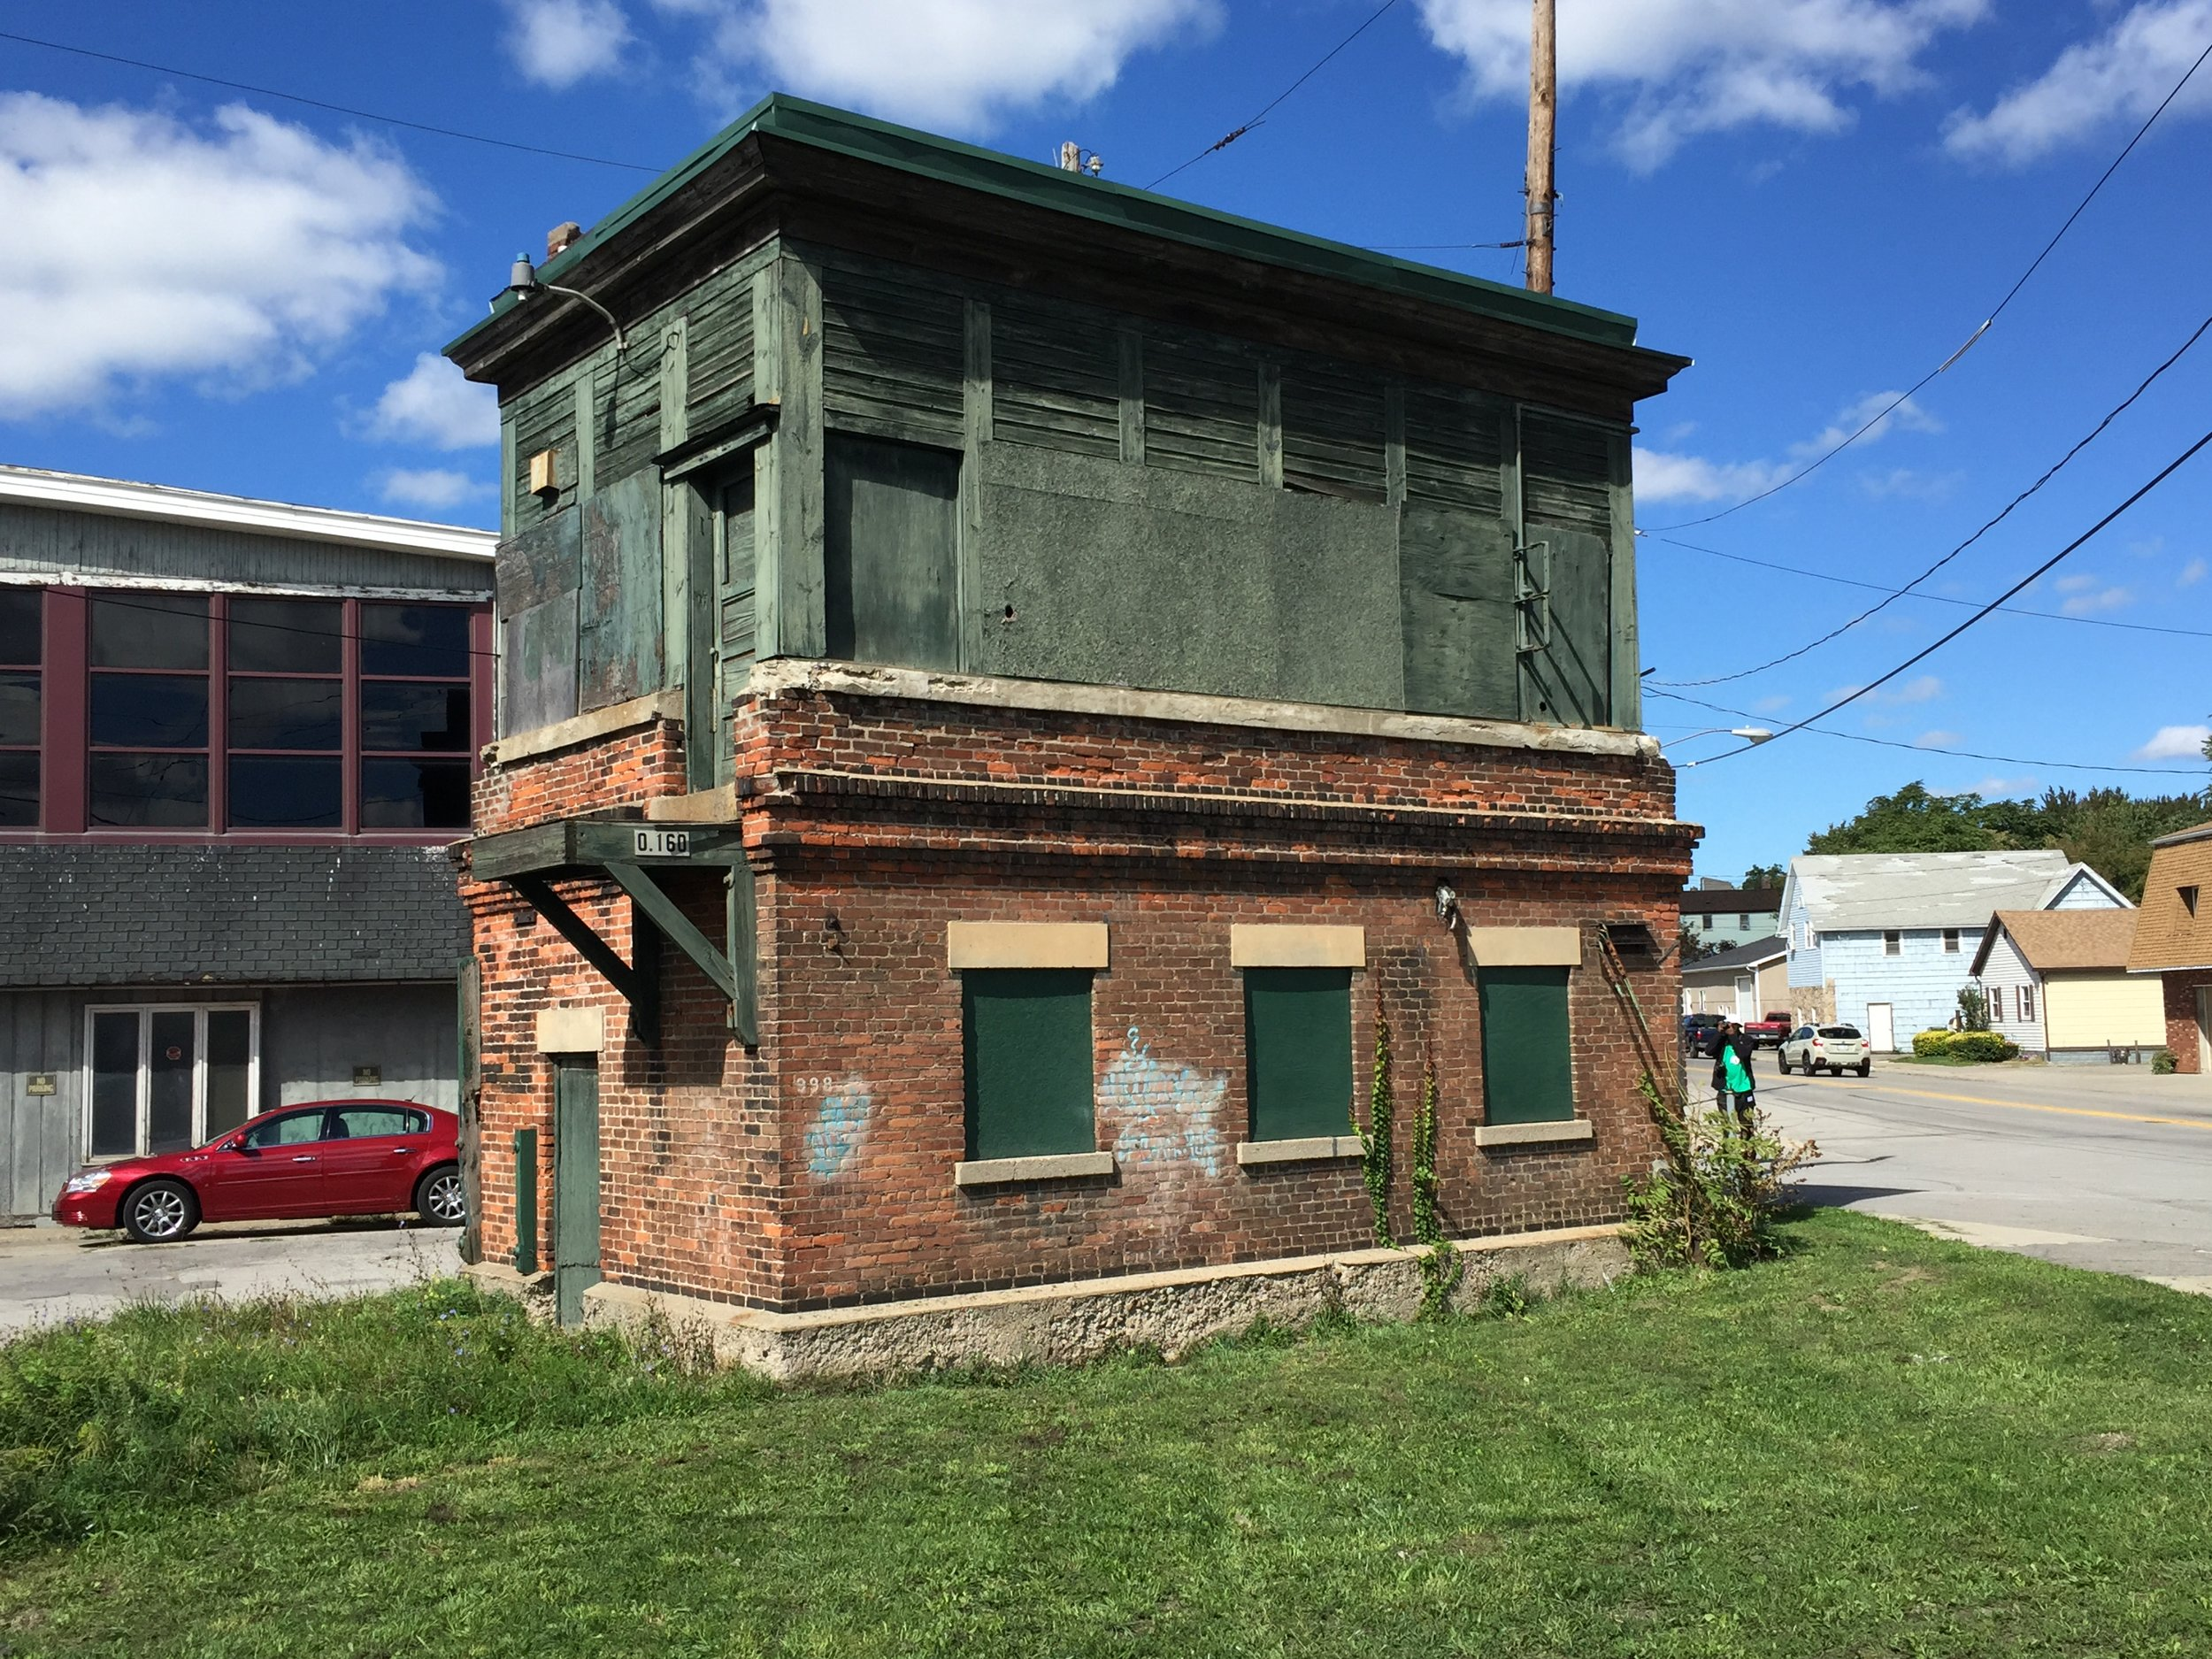 Former interlocking tower down the street from the Railroad Museum of the Niagara Frontier